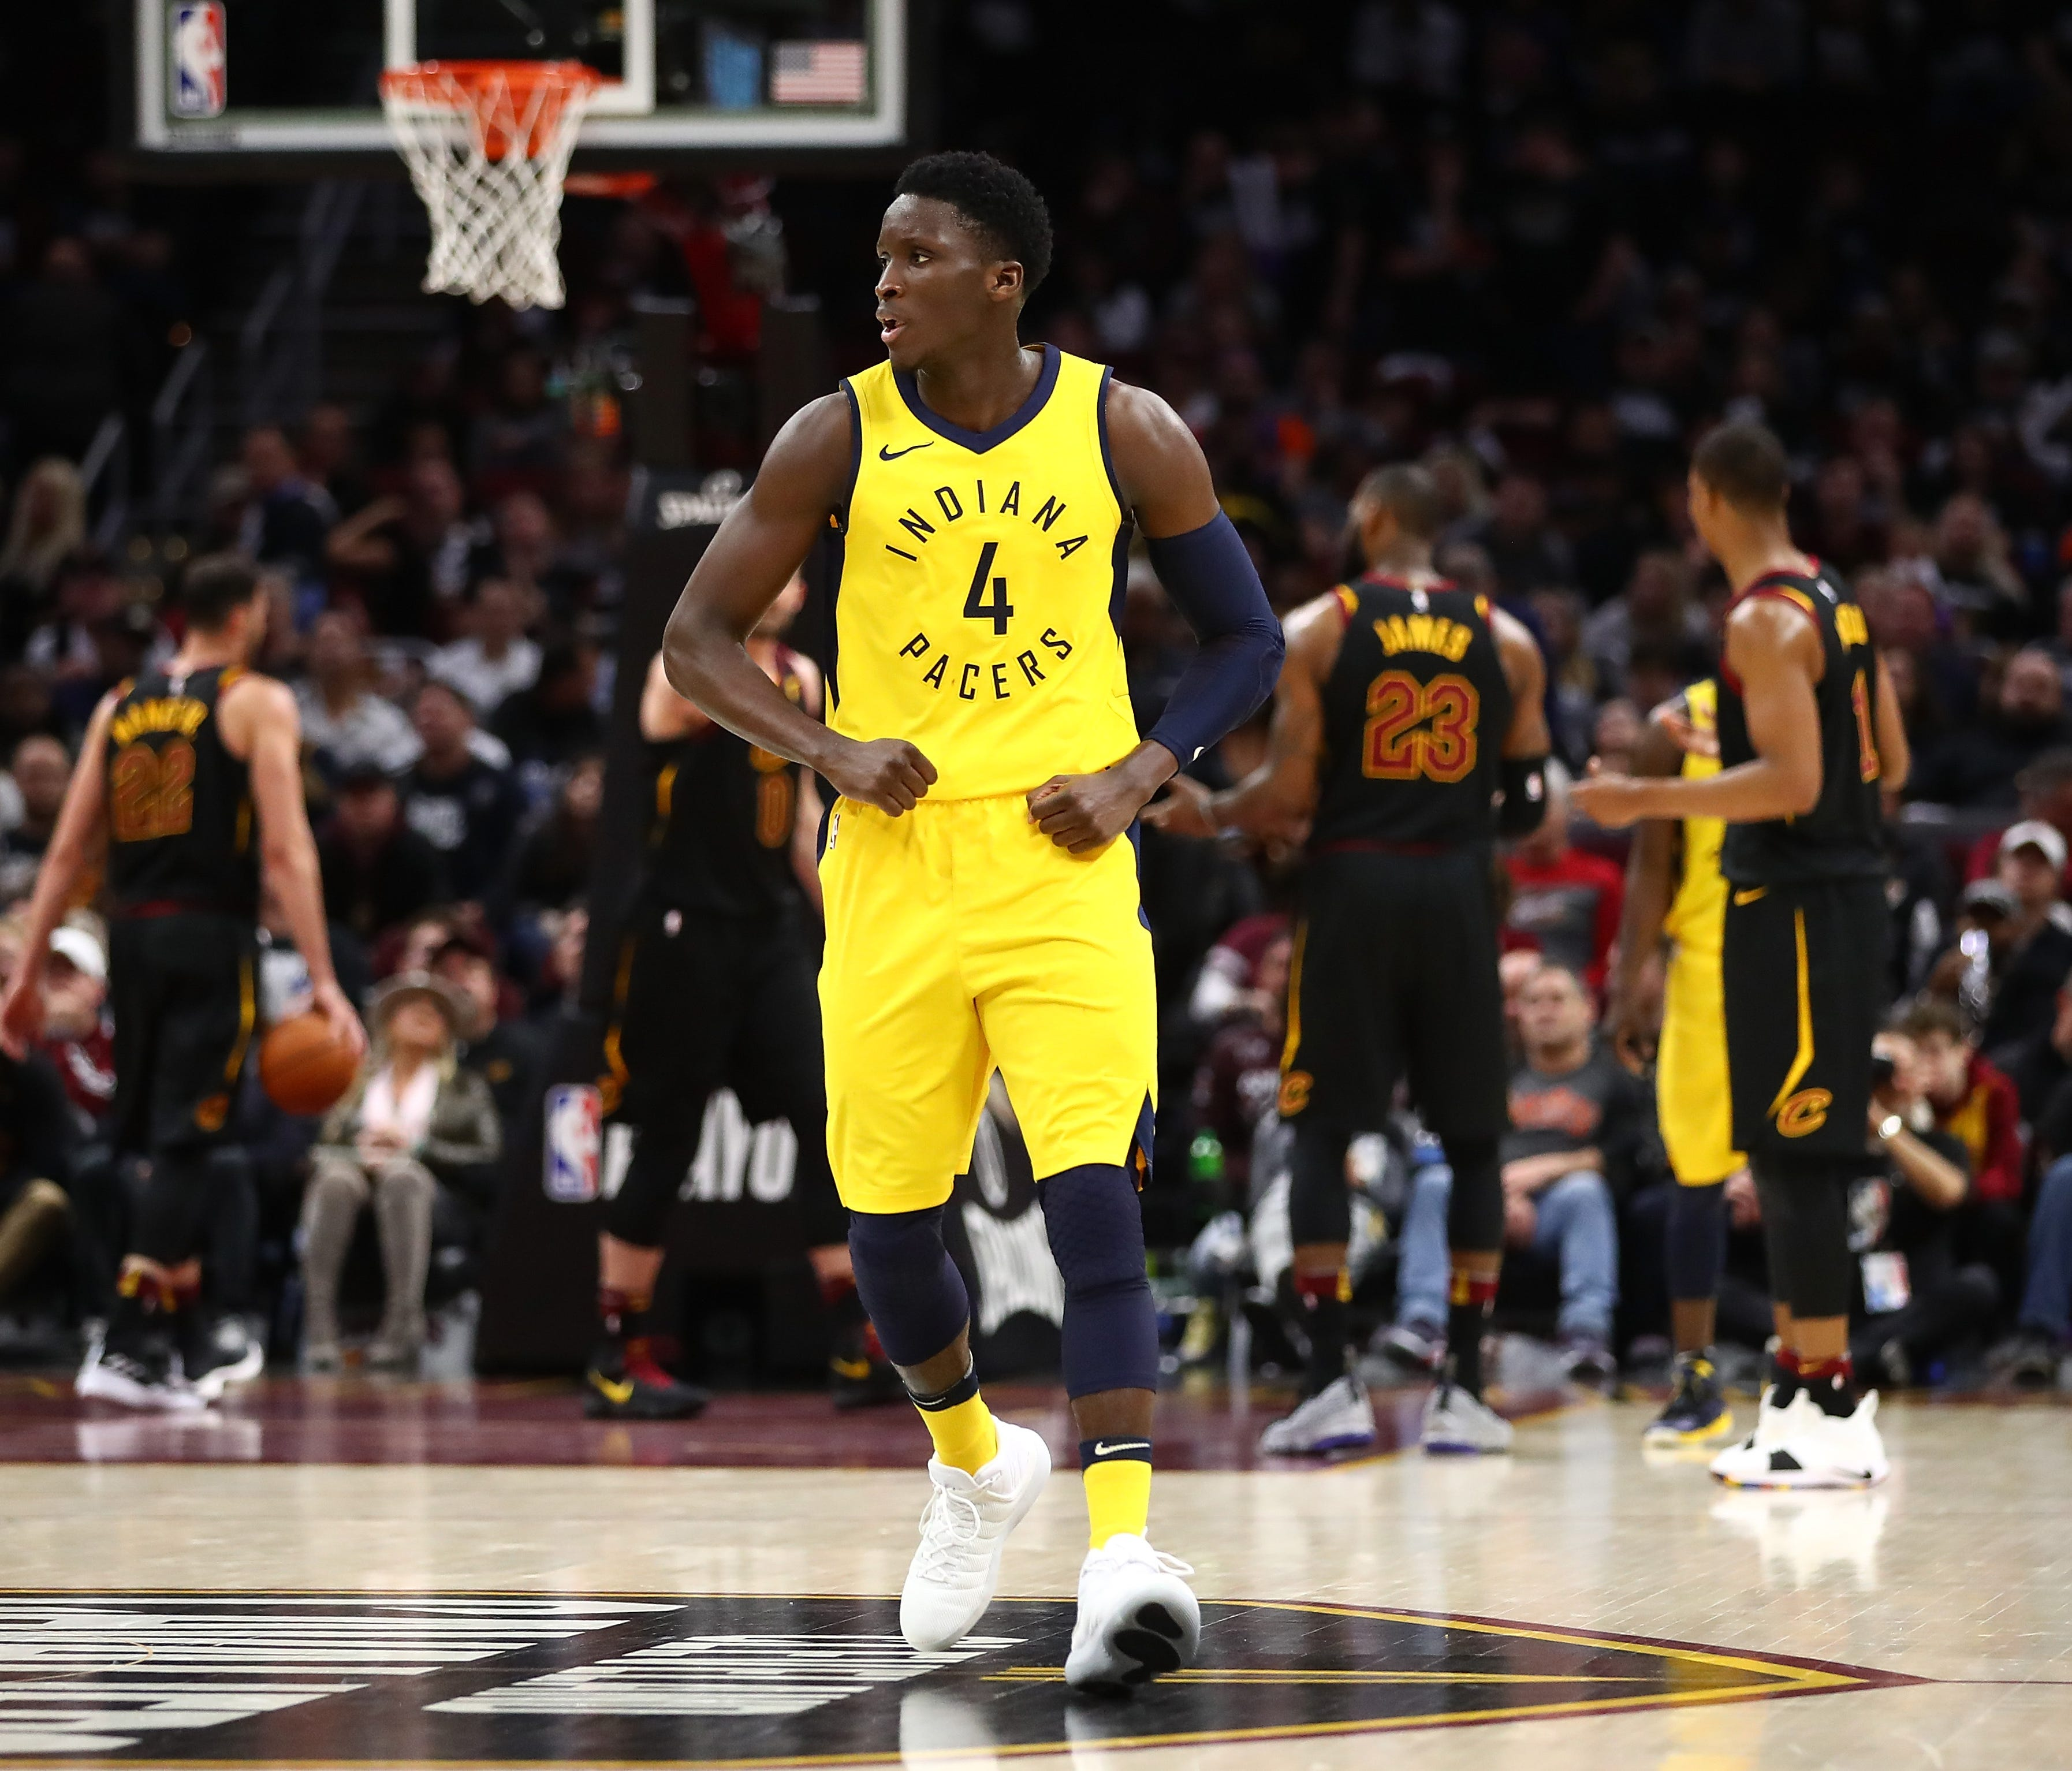 Victor Oladipo of the Indiana Pacers reacts to a fourth quarter three-point basket.